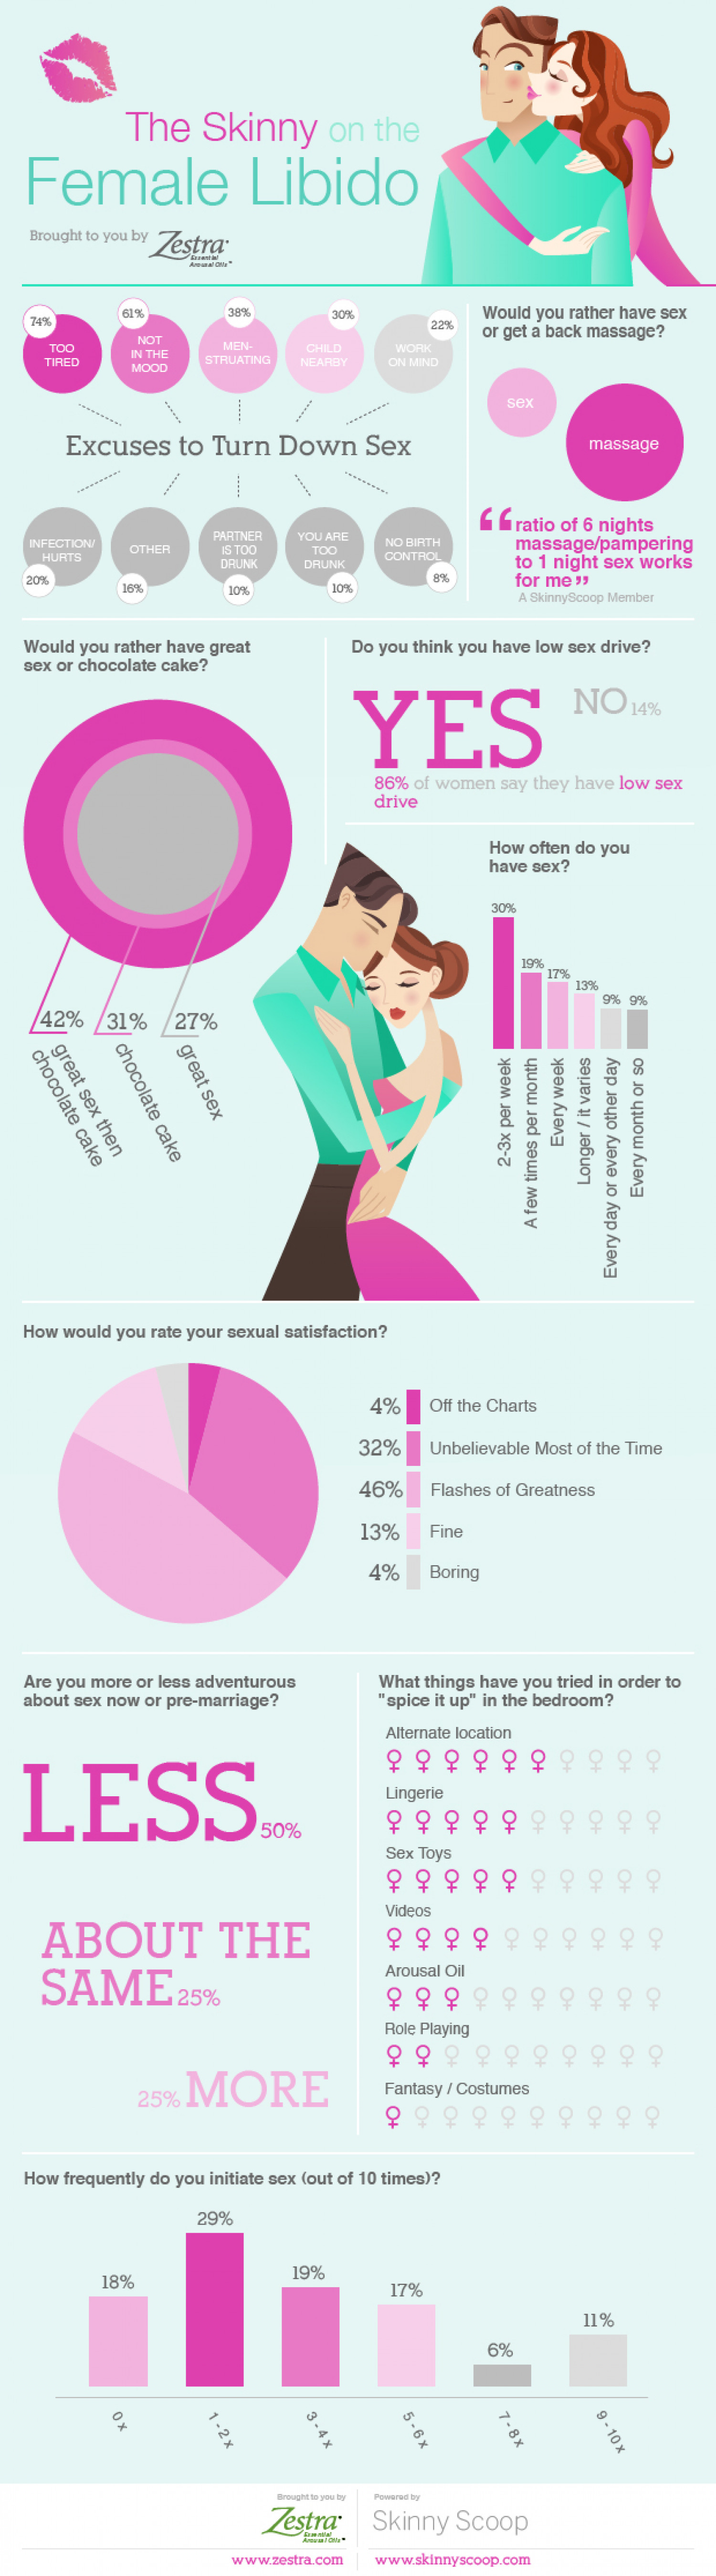 The Skinny on the Female Libido Infographic